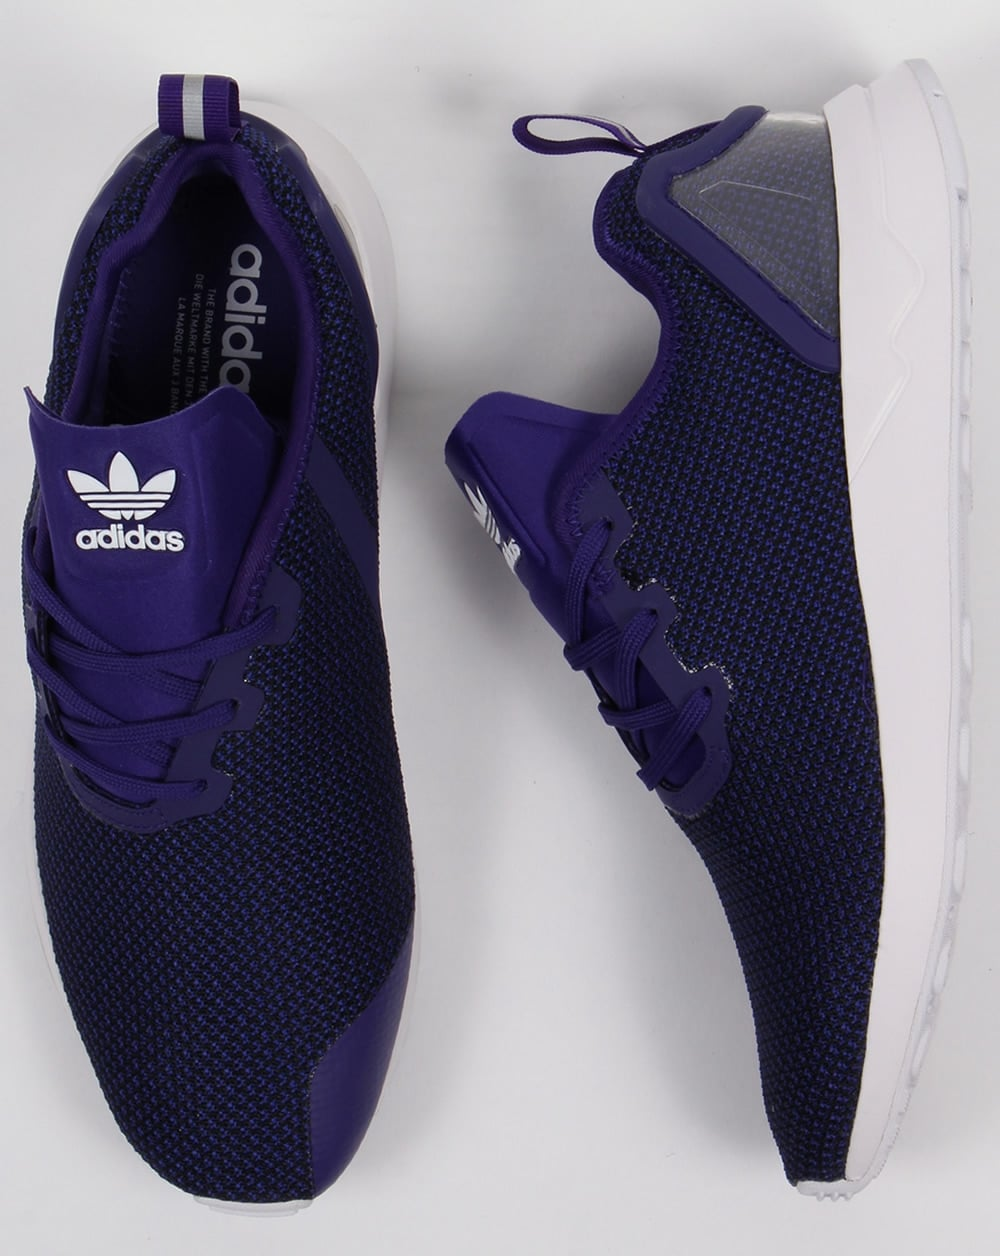 Adidas Zx Flux Neo myultimatewebsitehosting.co.uk